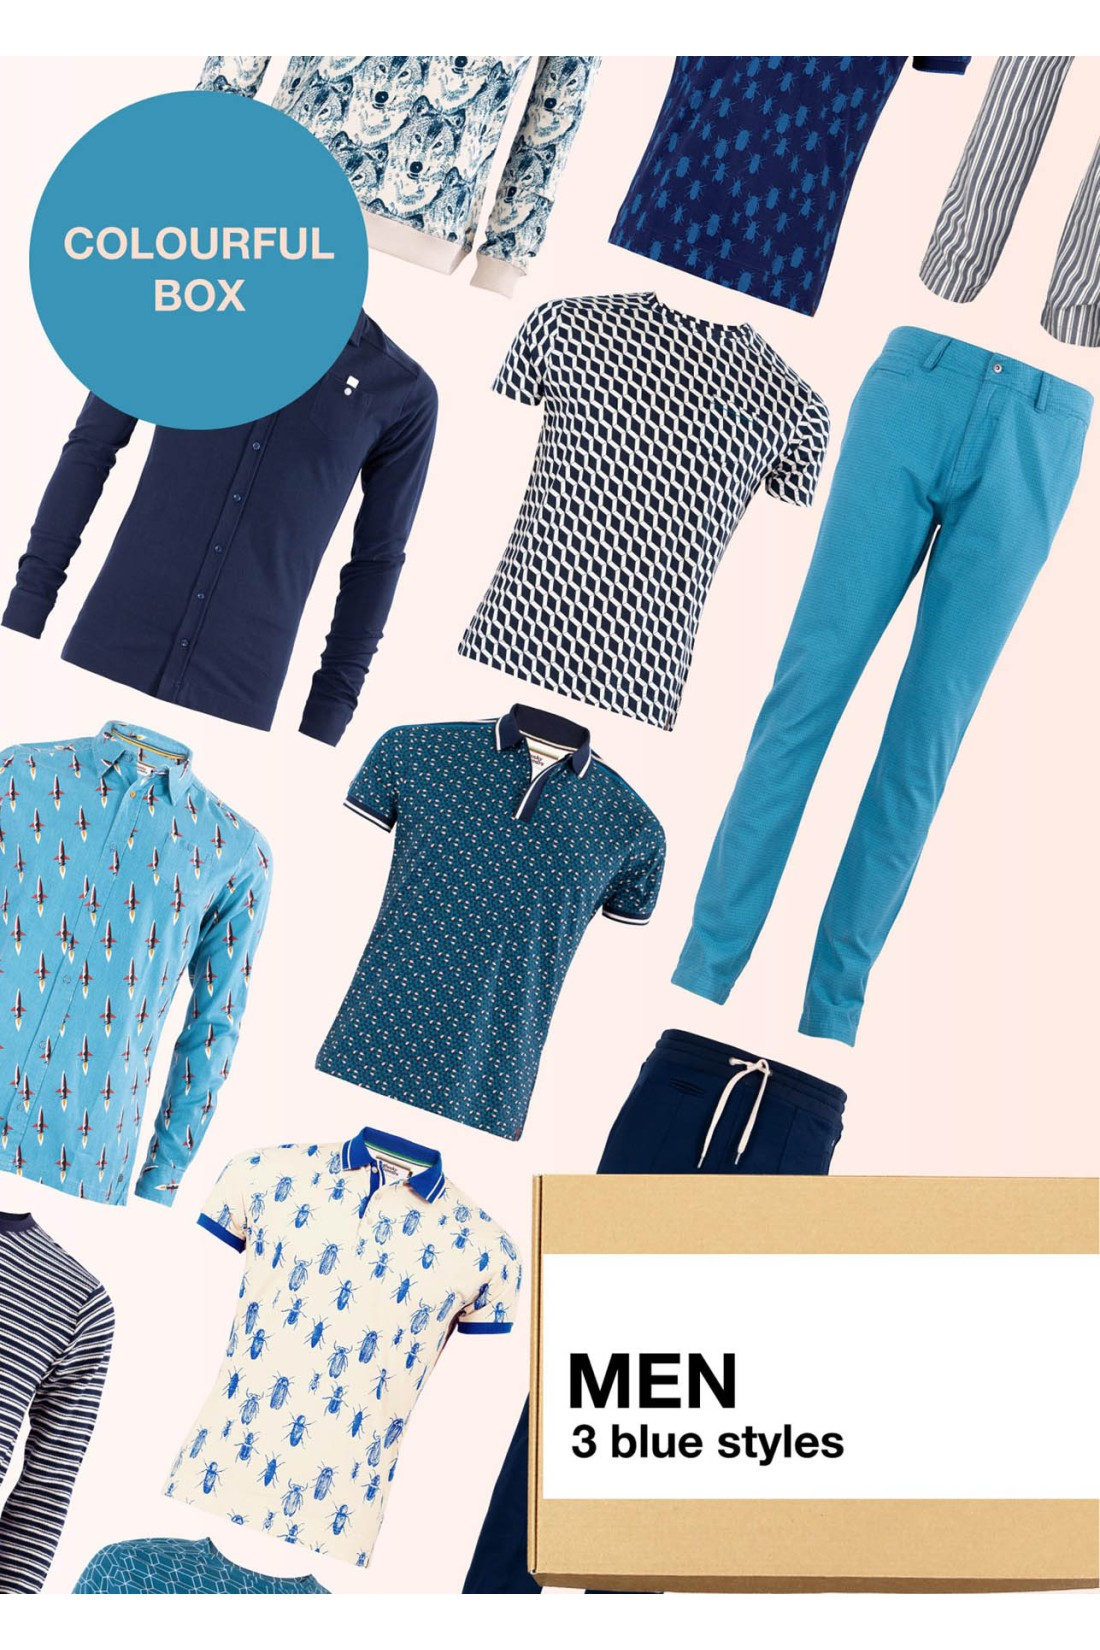 Surprise Box Men - Blue Box 3 Styles With Blue In It